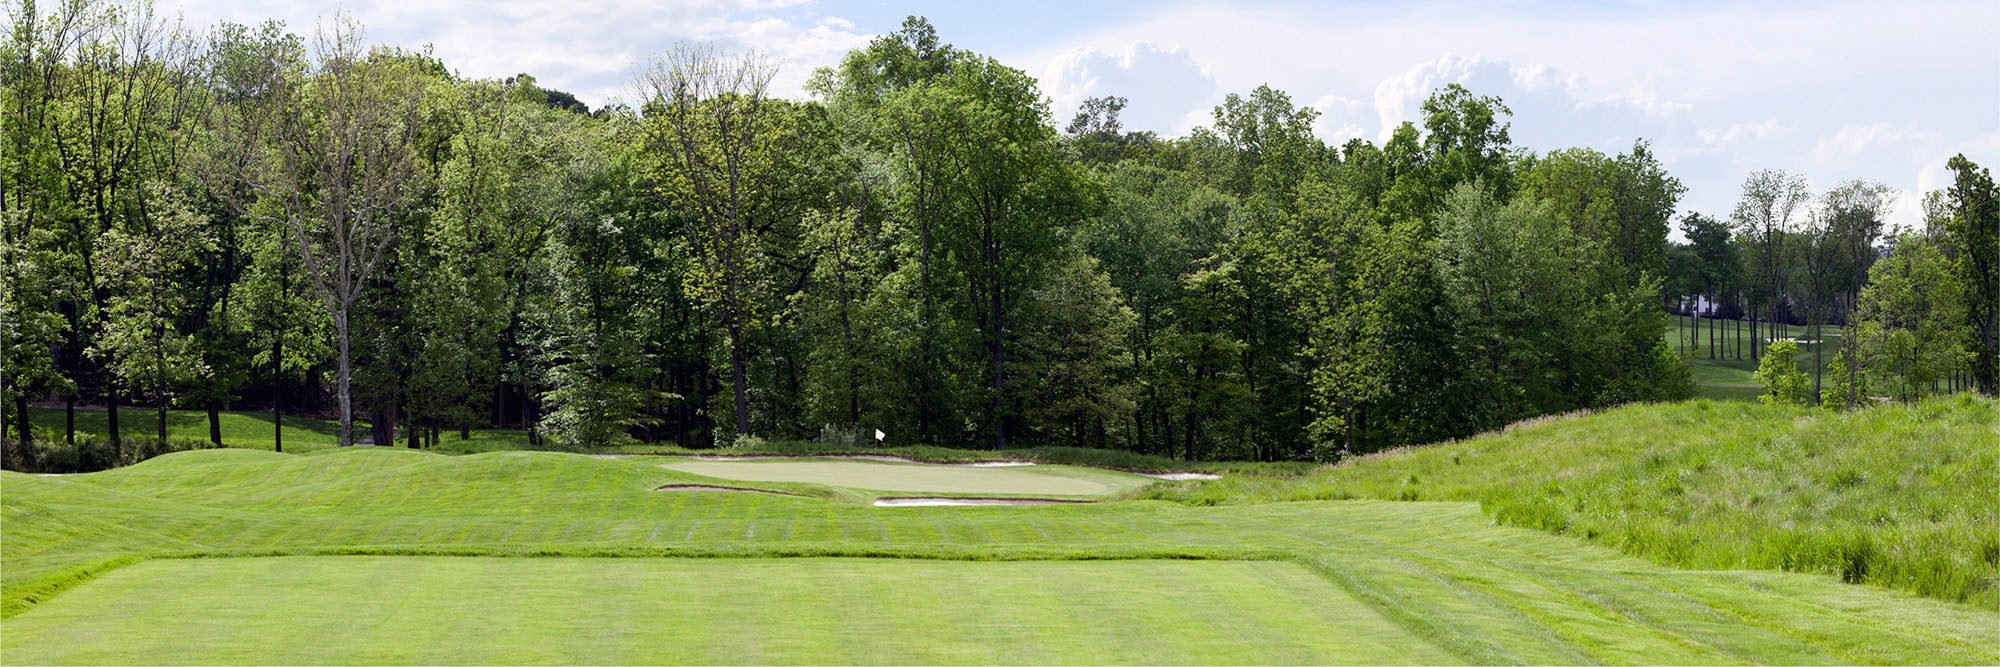 Golf Course Image - New Jersey National Golf Club No. 11